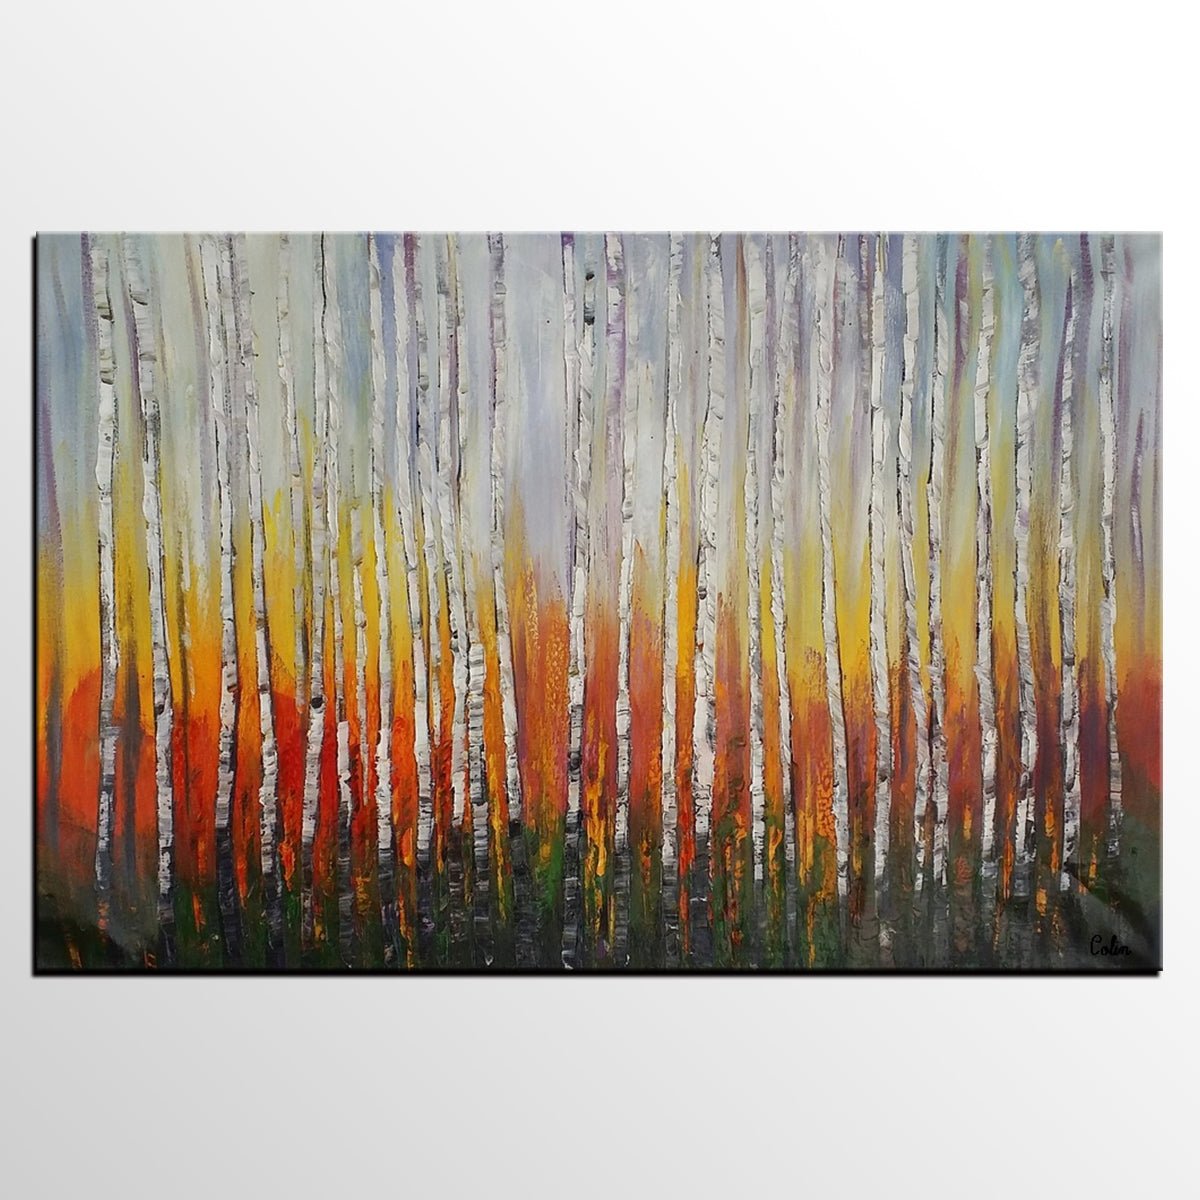 Original Painting, Abstract Painting, Birch Tree Painting, Large Art, Canvas Art - artworkcanvas